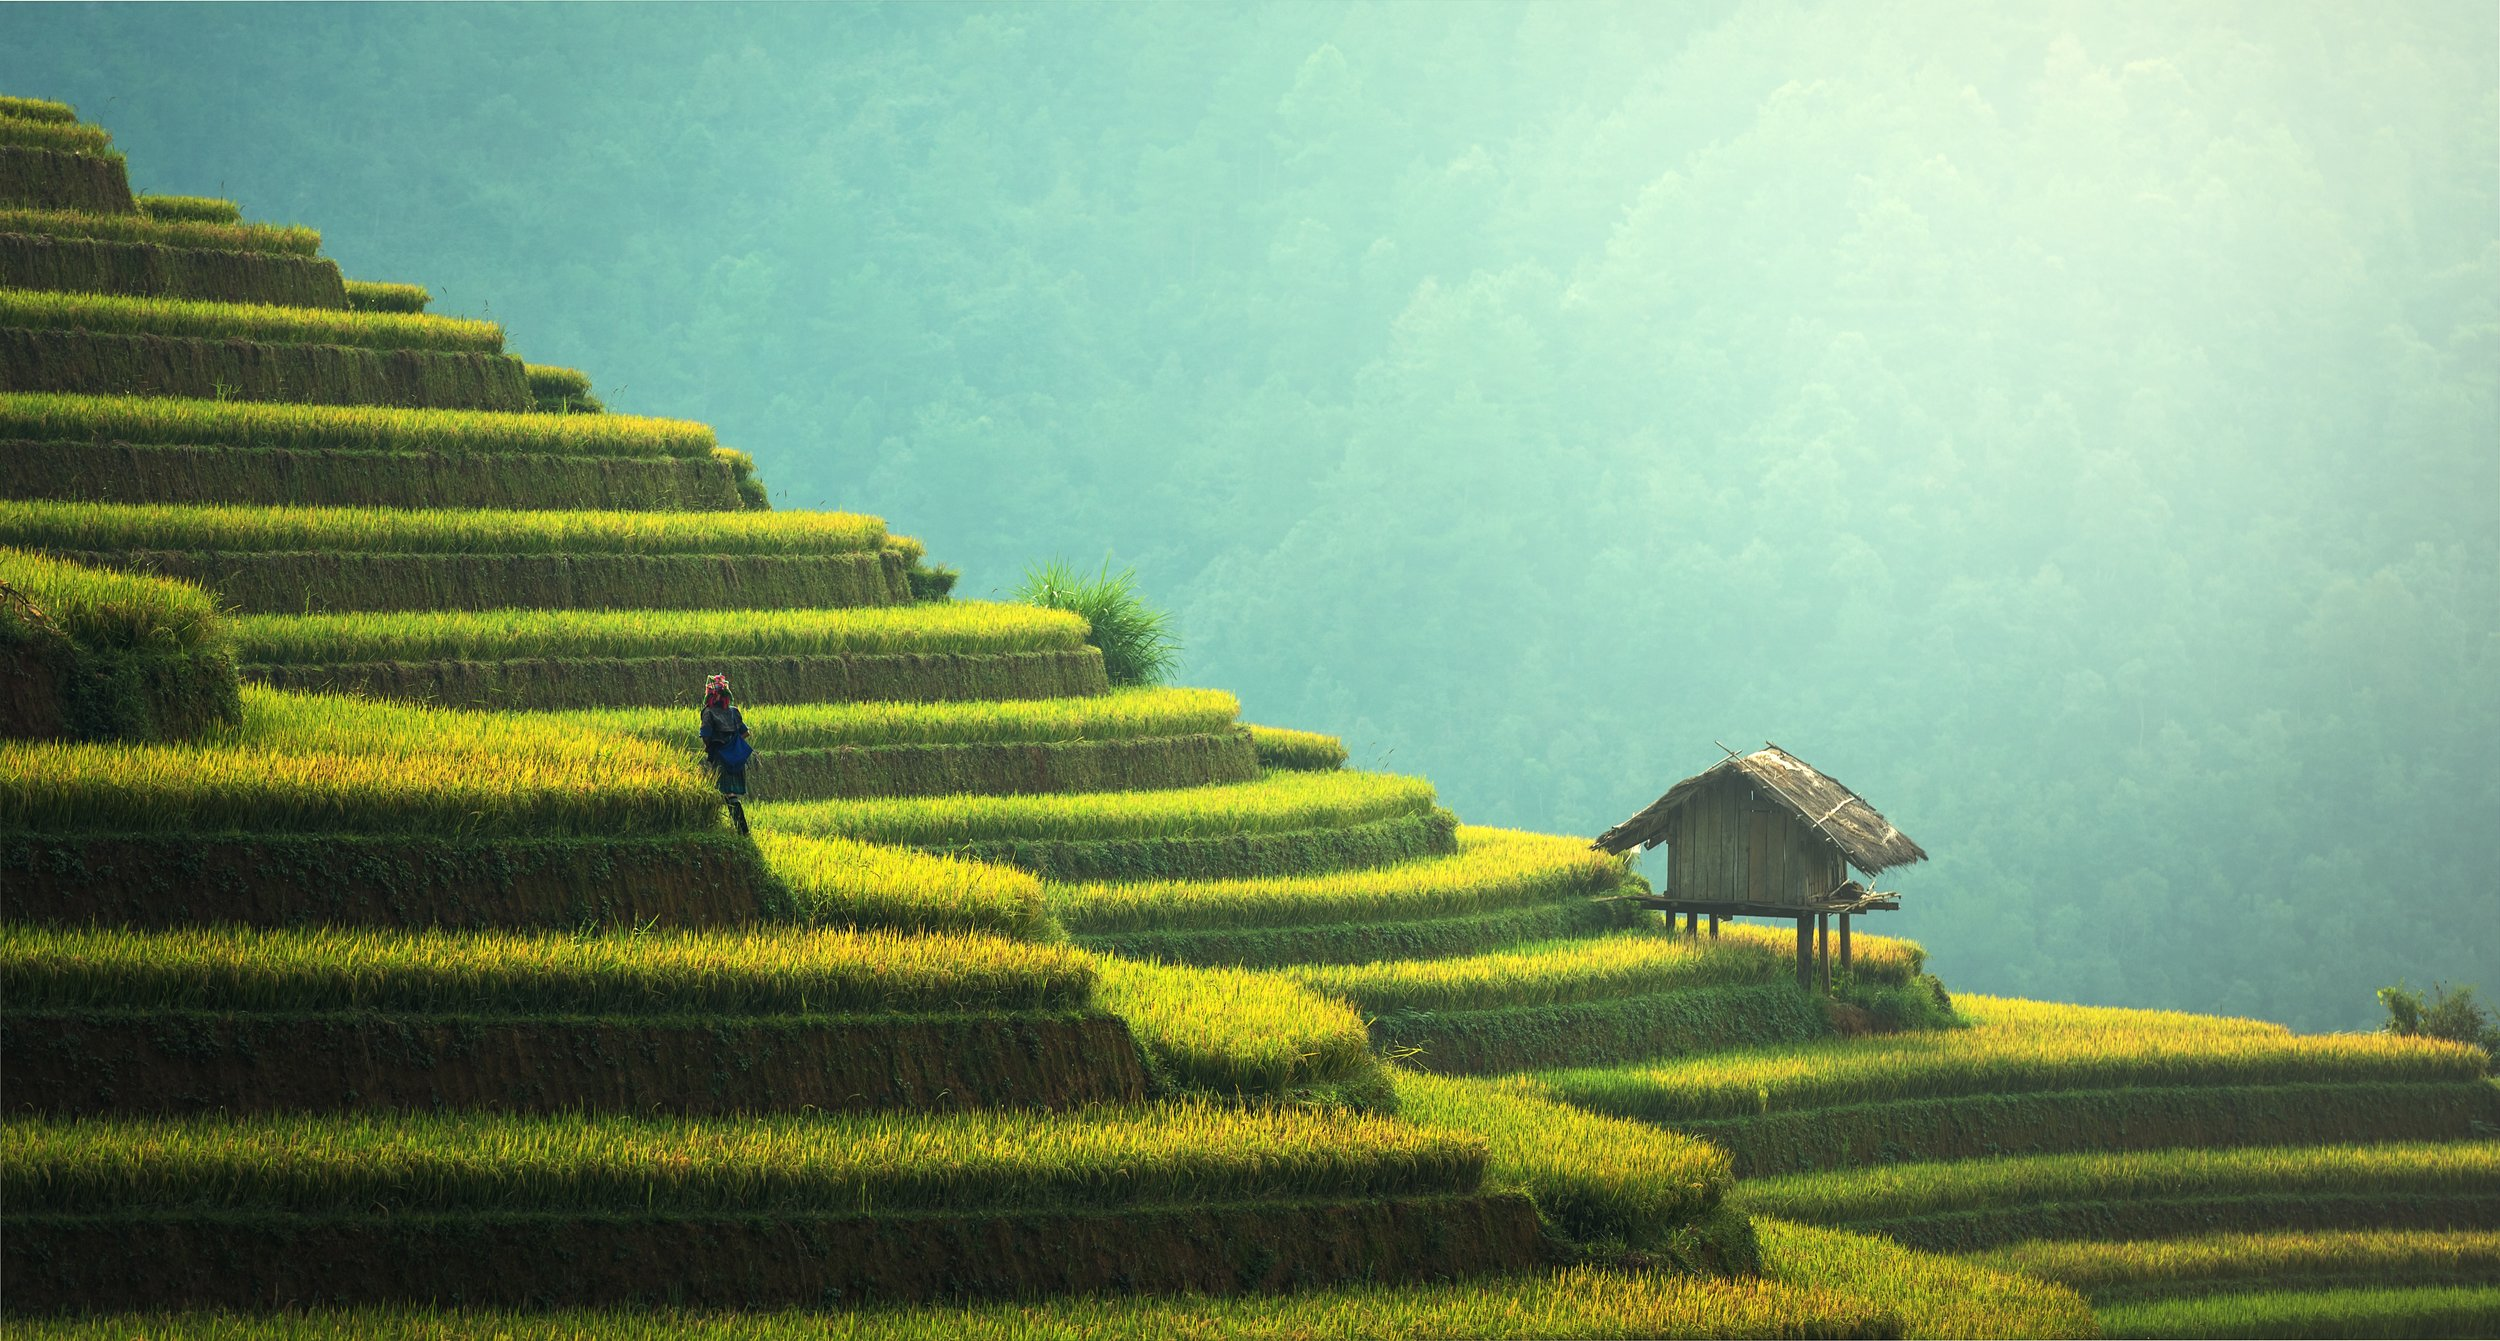 Guilin_agriculture.jpg